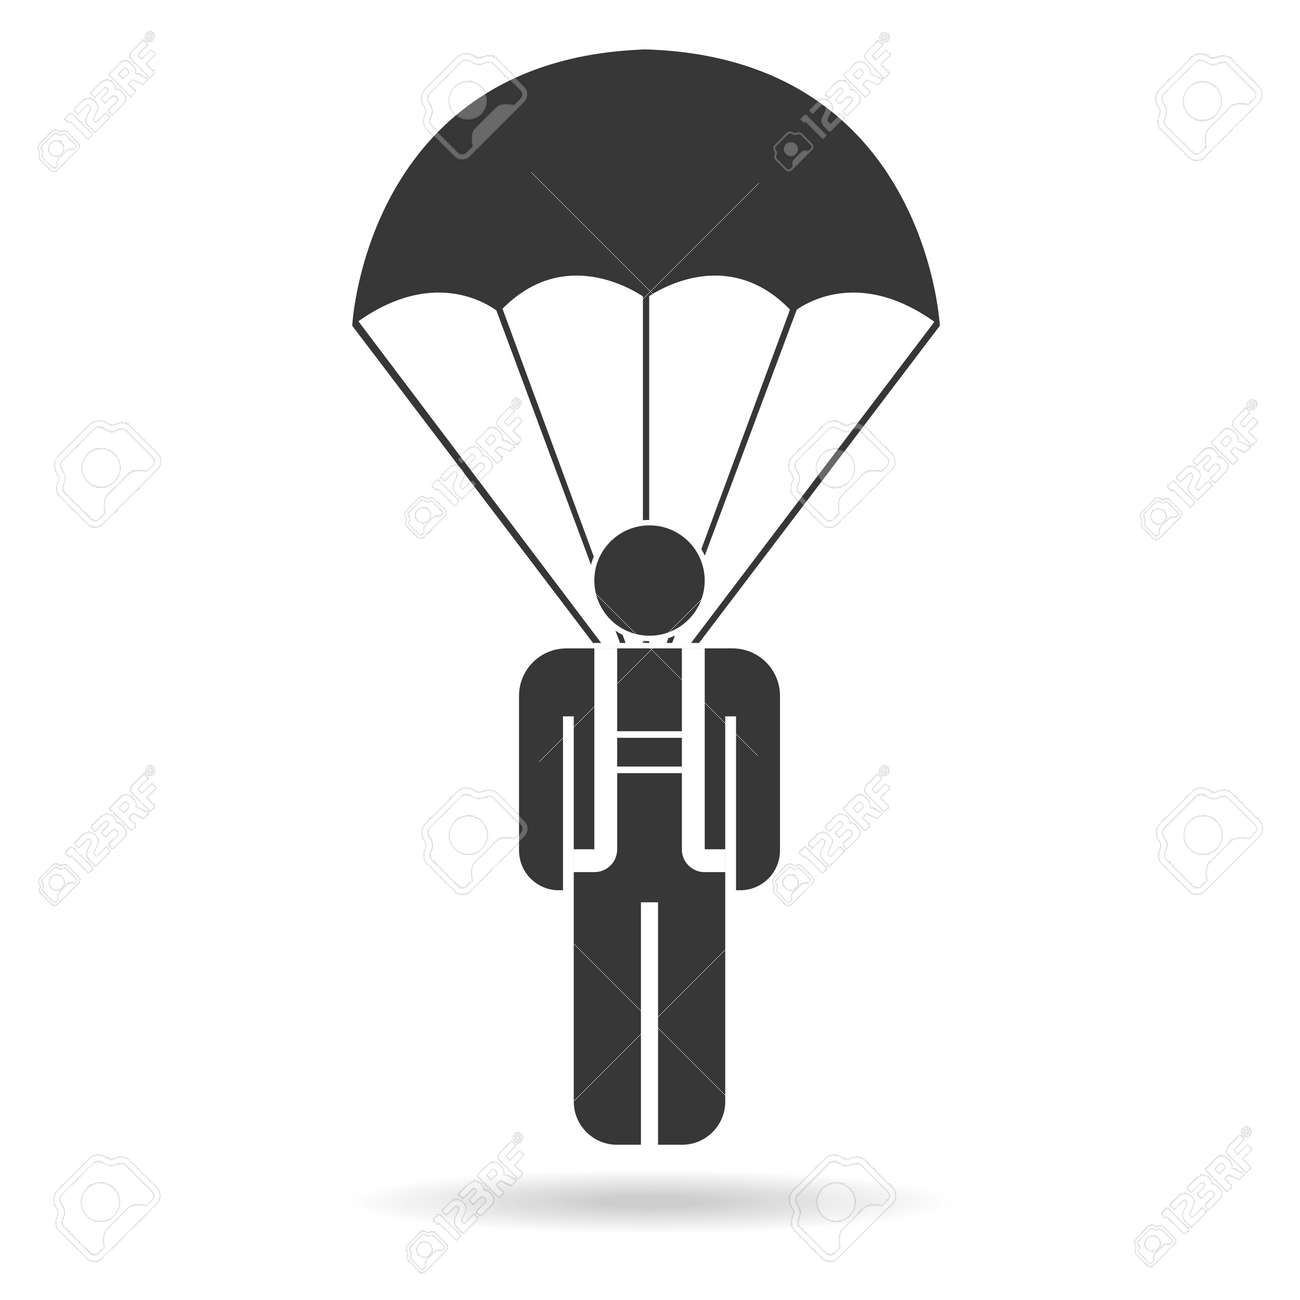 skydiver on parachute vector icon royalty free cliparts vectors rh 123rf com parachute vector free parachute vector graphics